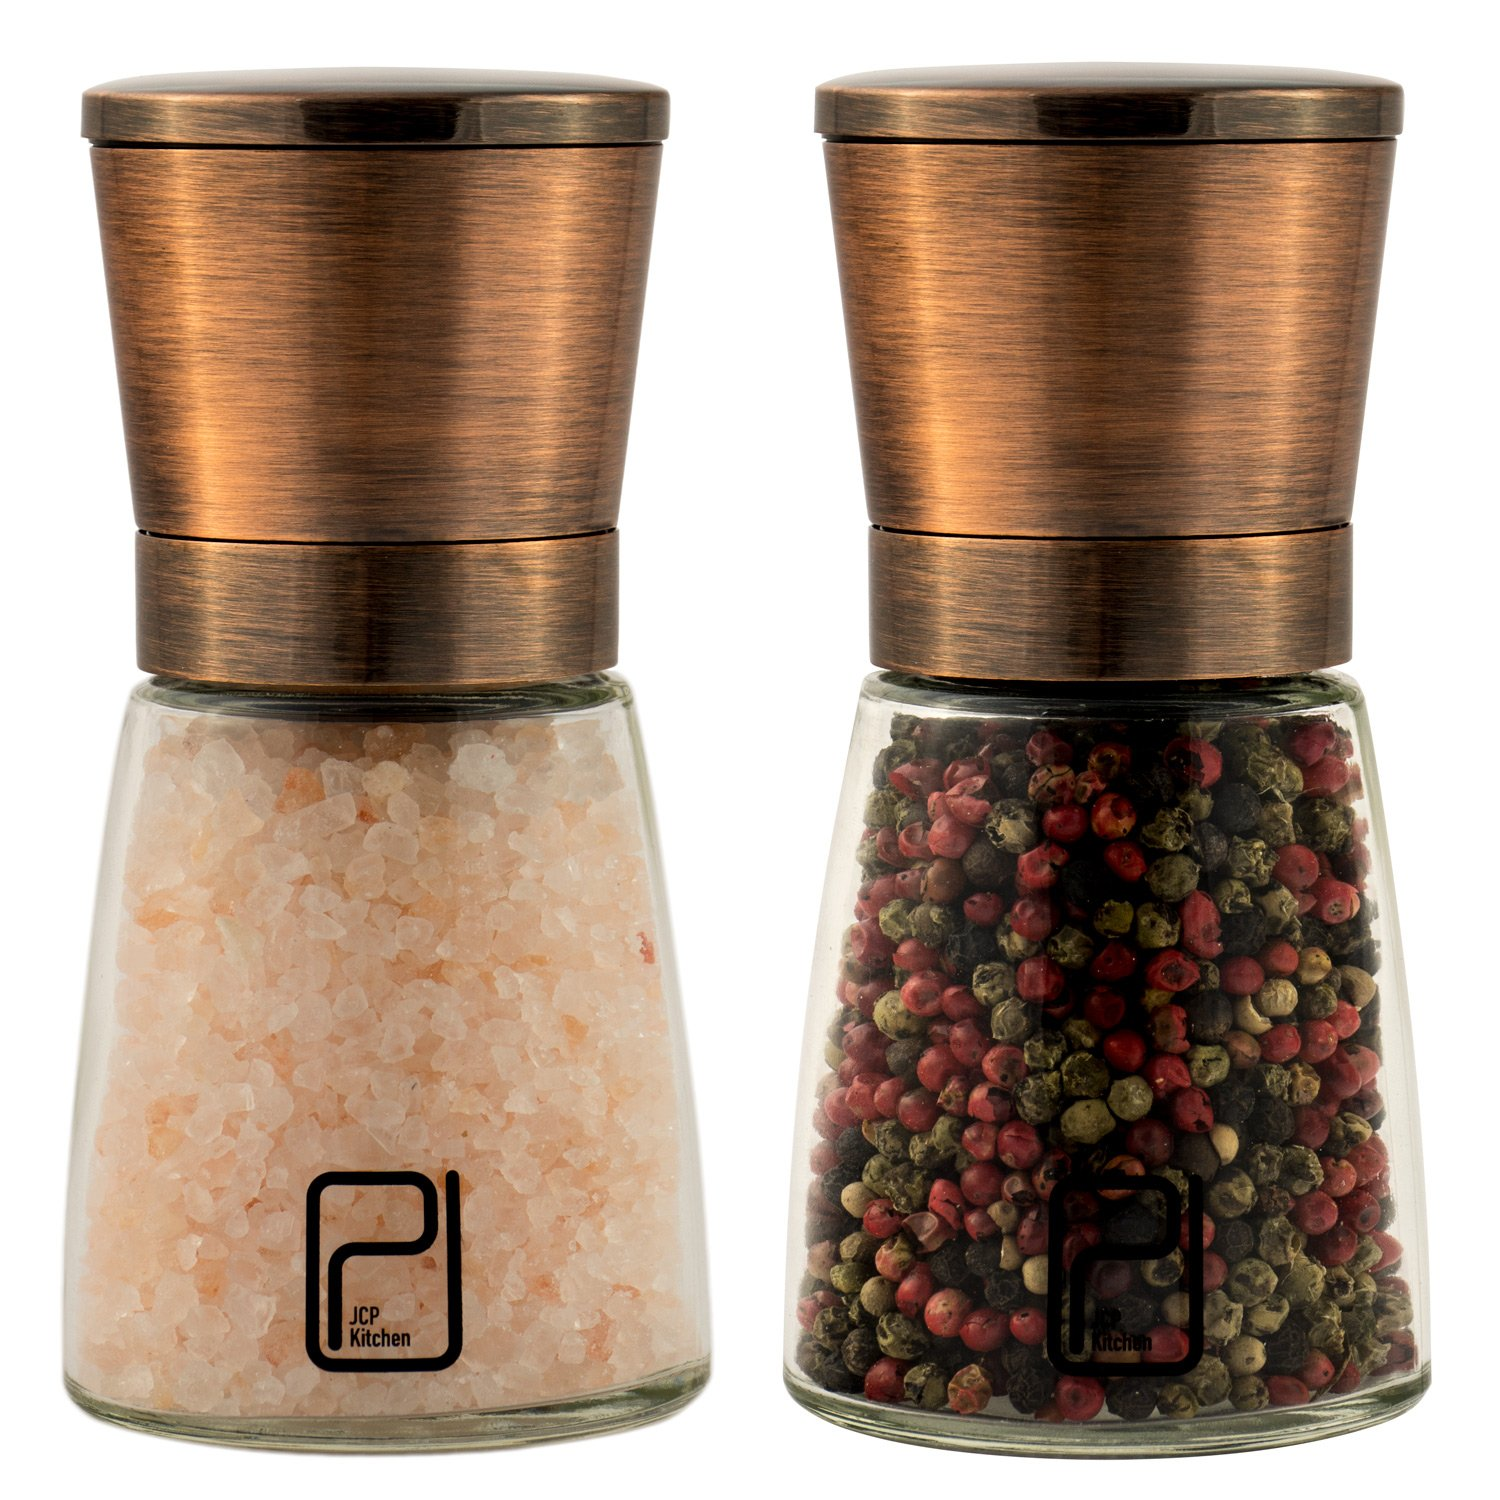 Premium Salt and Pepper Grinder Set - Best Copper Stainless Steel Mill for Home Chef, Magnetic Lids, Smooth Ceramic Spice Grinders with Easy Adjustable Coarseness, Top Salt and Pepper Shakers - 6 Oz JCPKitchen